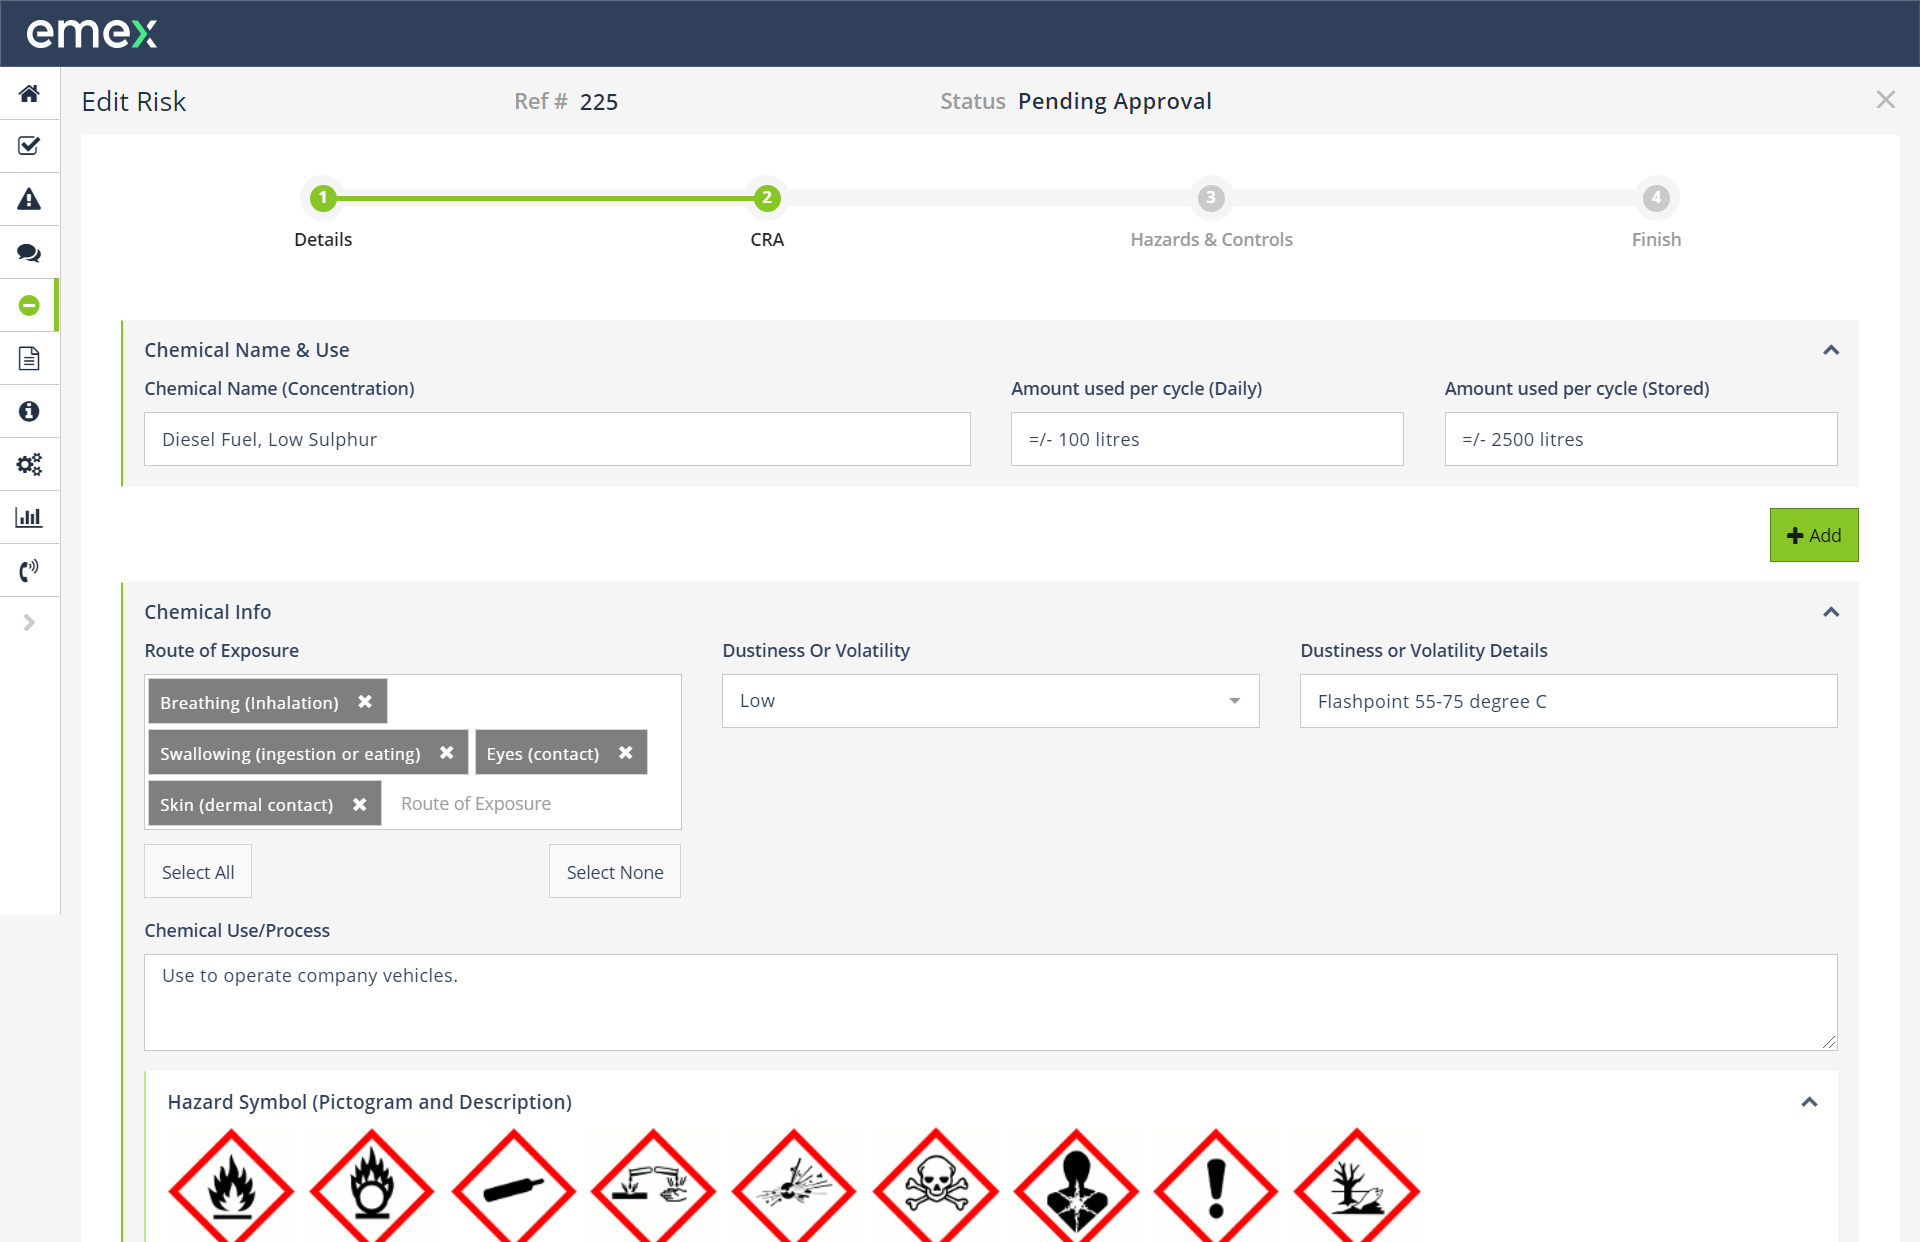 Emex EHS & ESG Software Software - Configure dynamic risk assessments based on your organisation's template requirements for any activity, equipment, chemicals, etc.